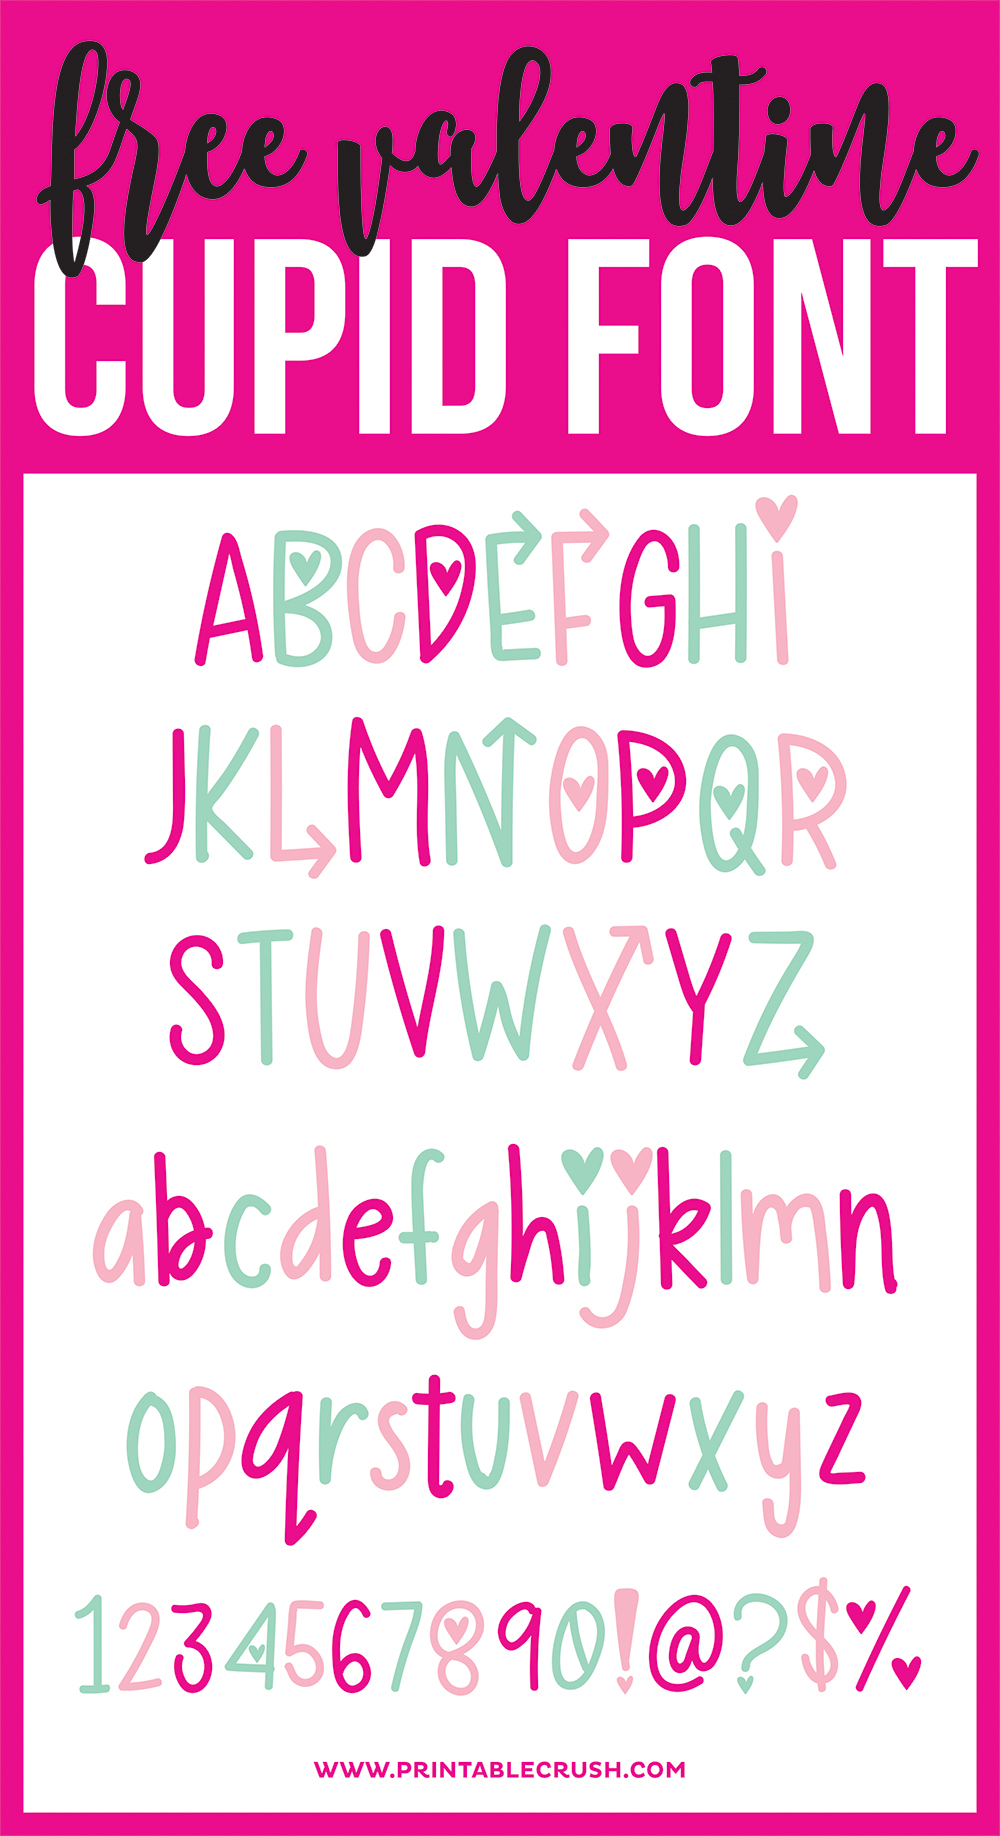 http://printablecrush.com/wp-content/uploads/2016/12/FREE-Valentine-Font-and-Gift-Tags-1-2.jpg